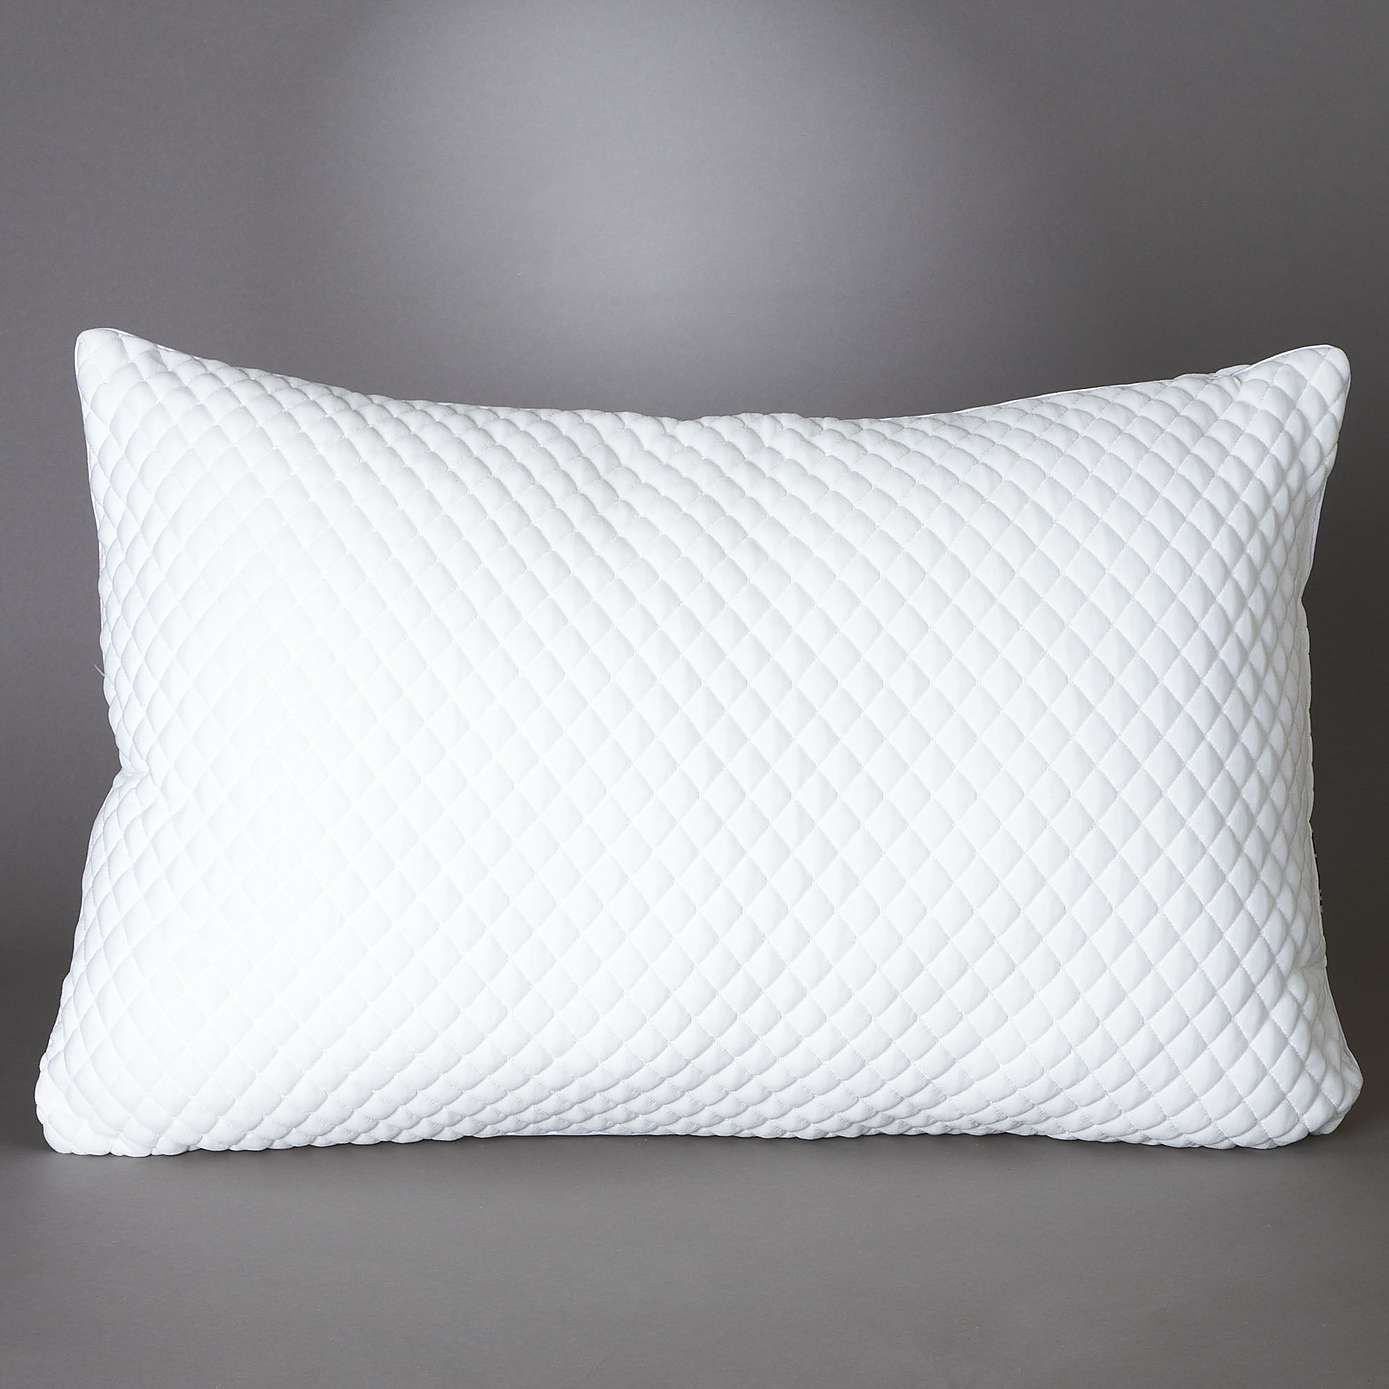 Huggable Soft Support Pillow | Dunelm